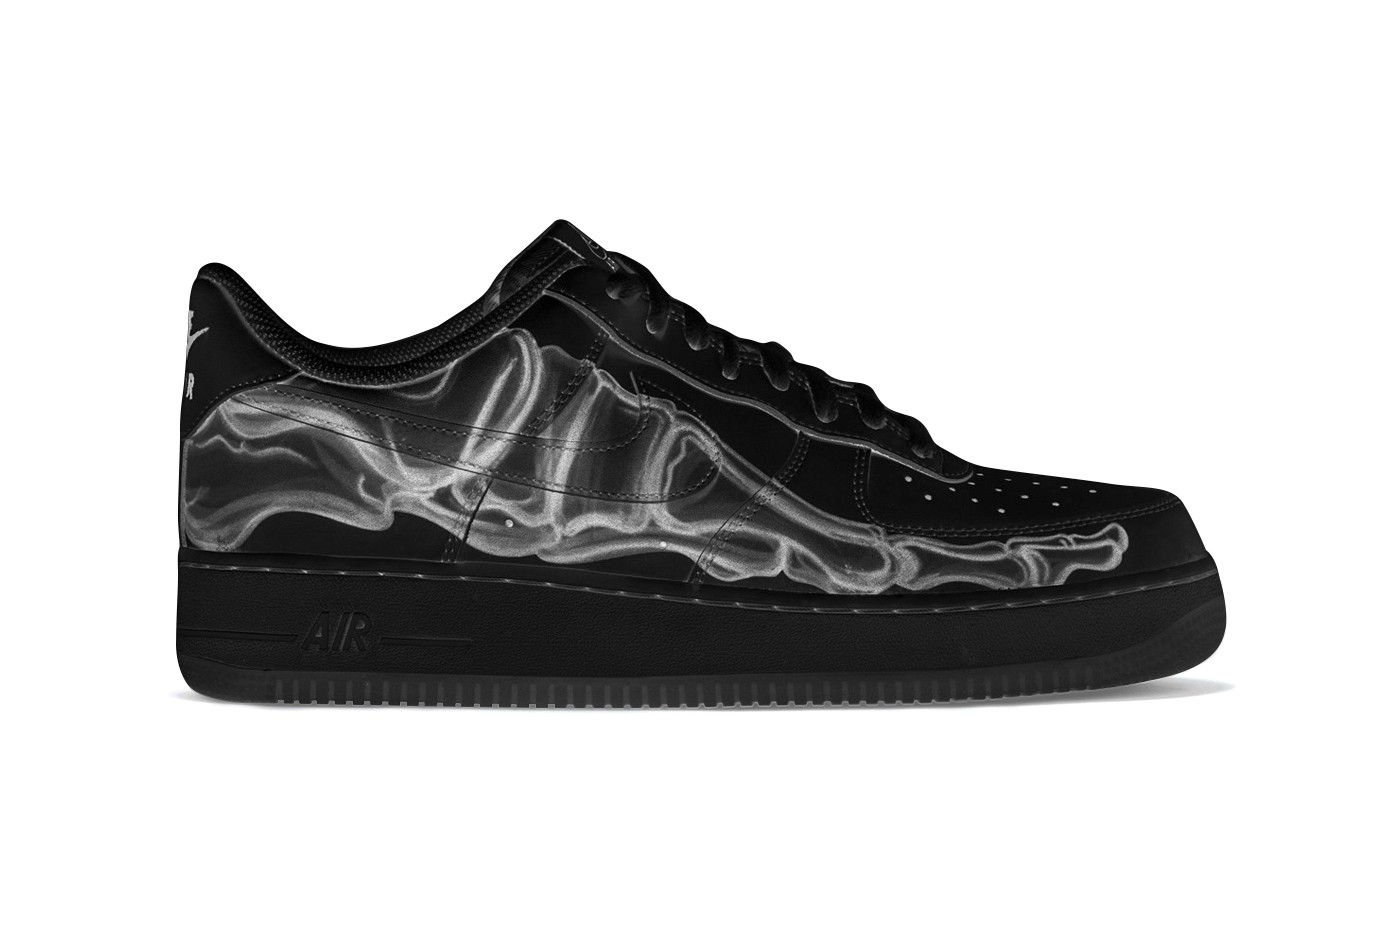 Nike Air Force 1 万圣节别注配色「Black Skeleton」发布